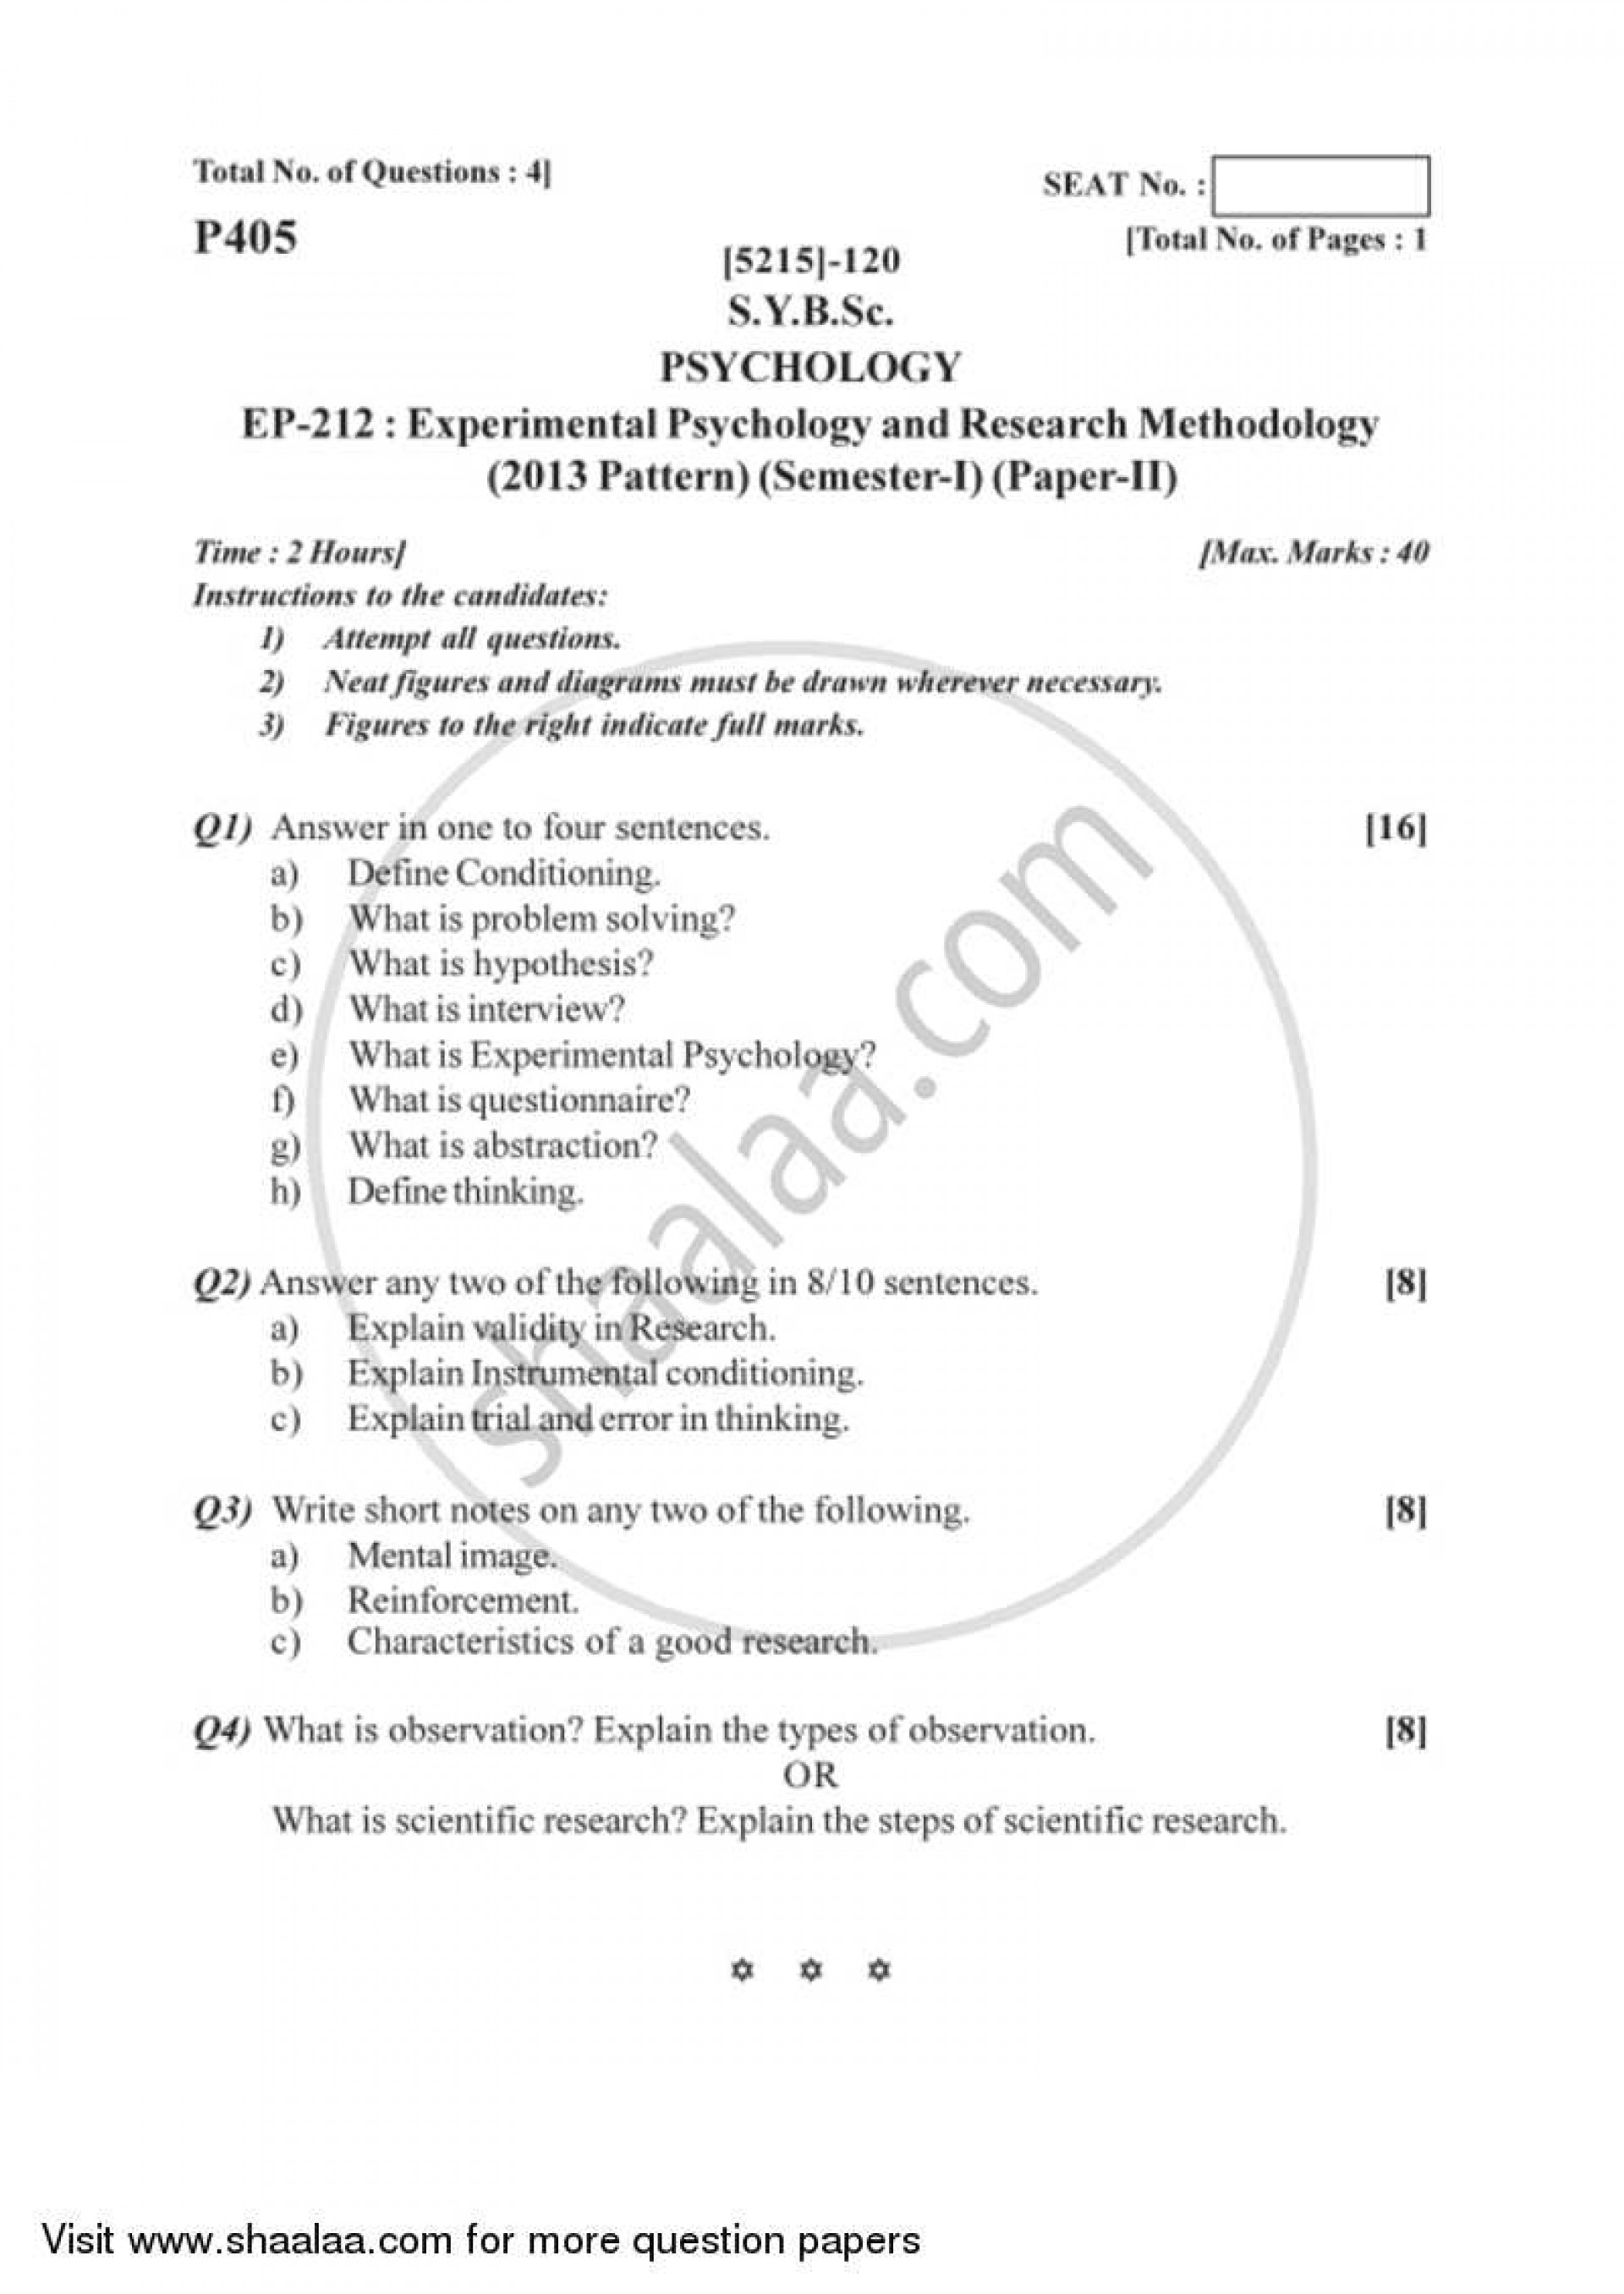 008 University Of Pune Bachelor Bsc Experimental Psychology Research Methodology Semester Sybsc Pattern 20a139127c9aa4d488dbfc2180e67df98 Paper Questions About Unique Papers Good To Ask Test 1920